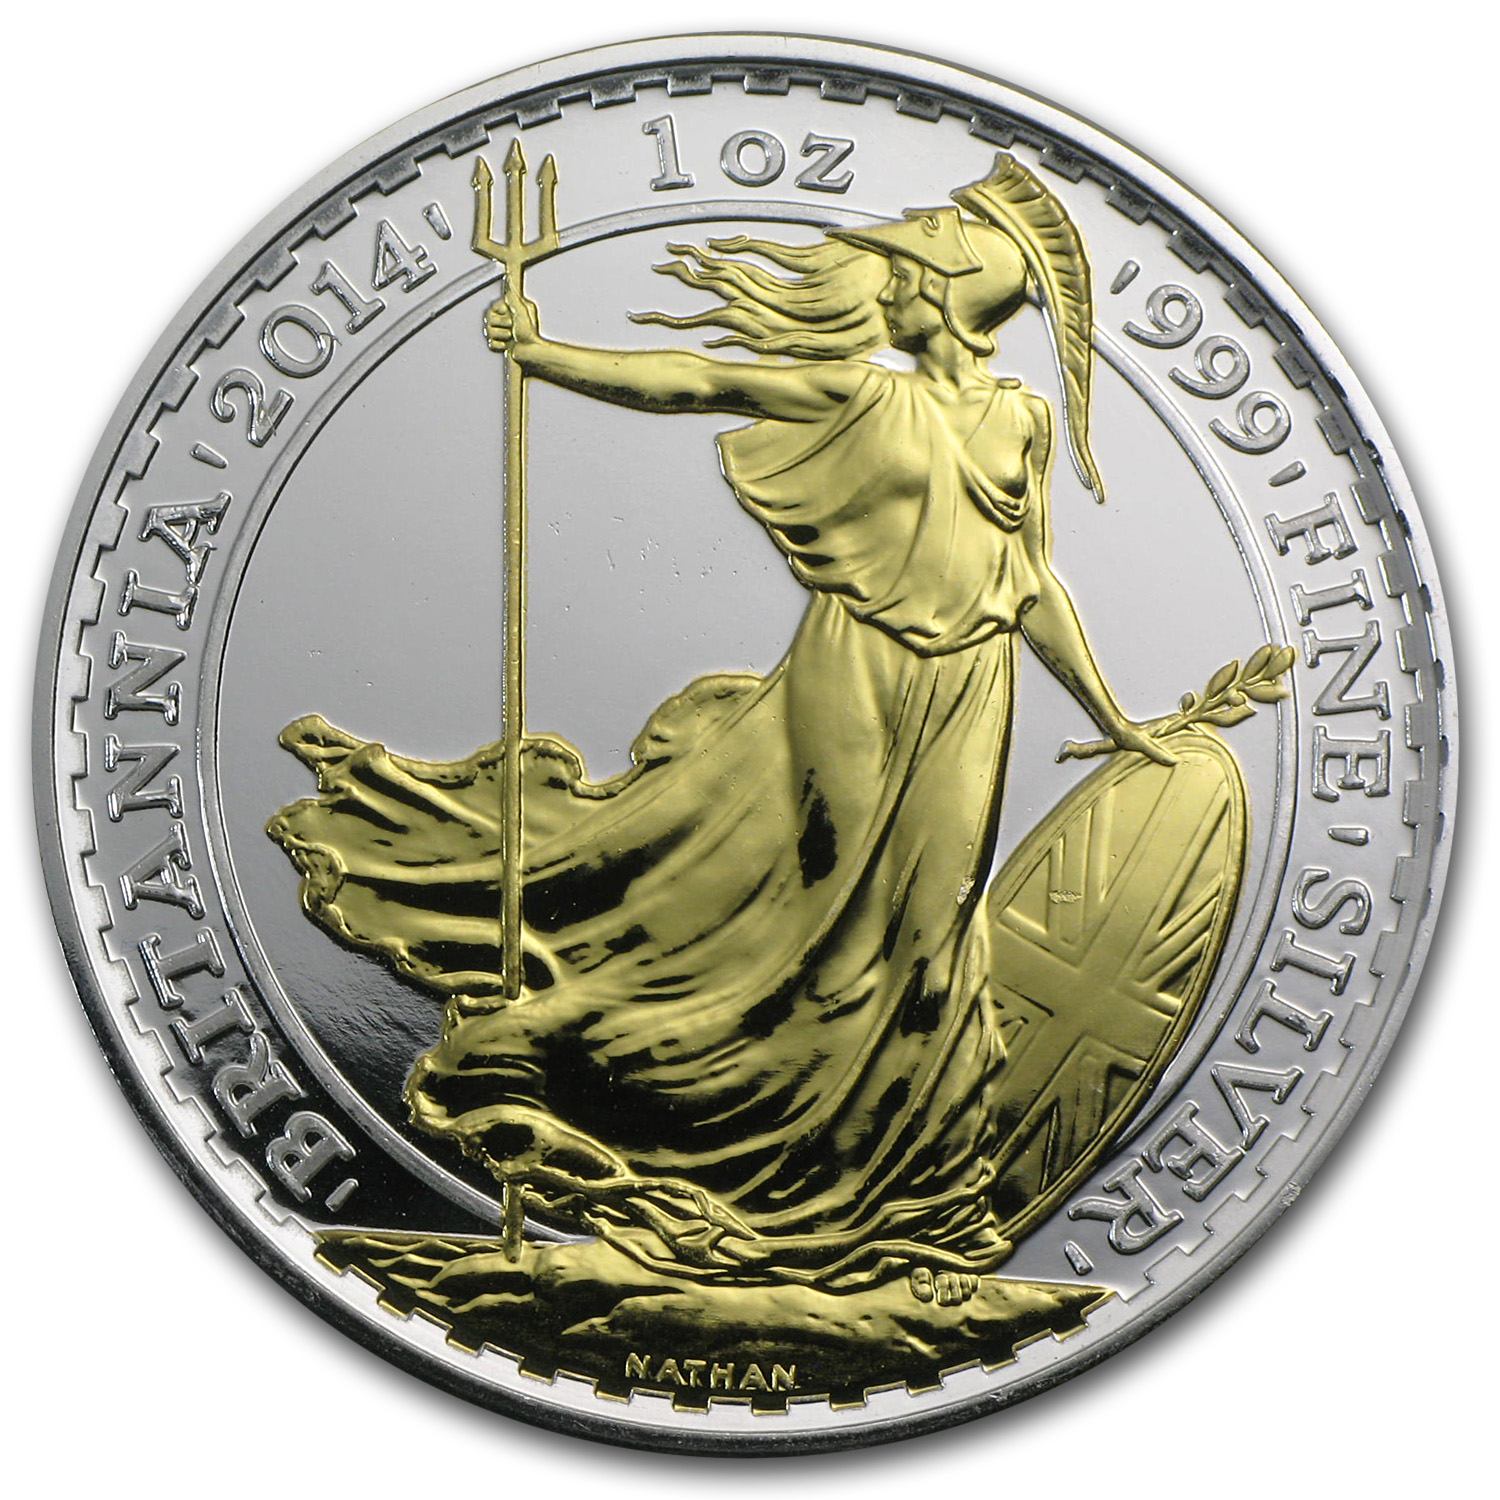 2014 Great Britain 1 oz Silver Britannia BU (Gilded)